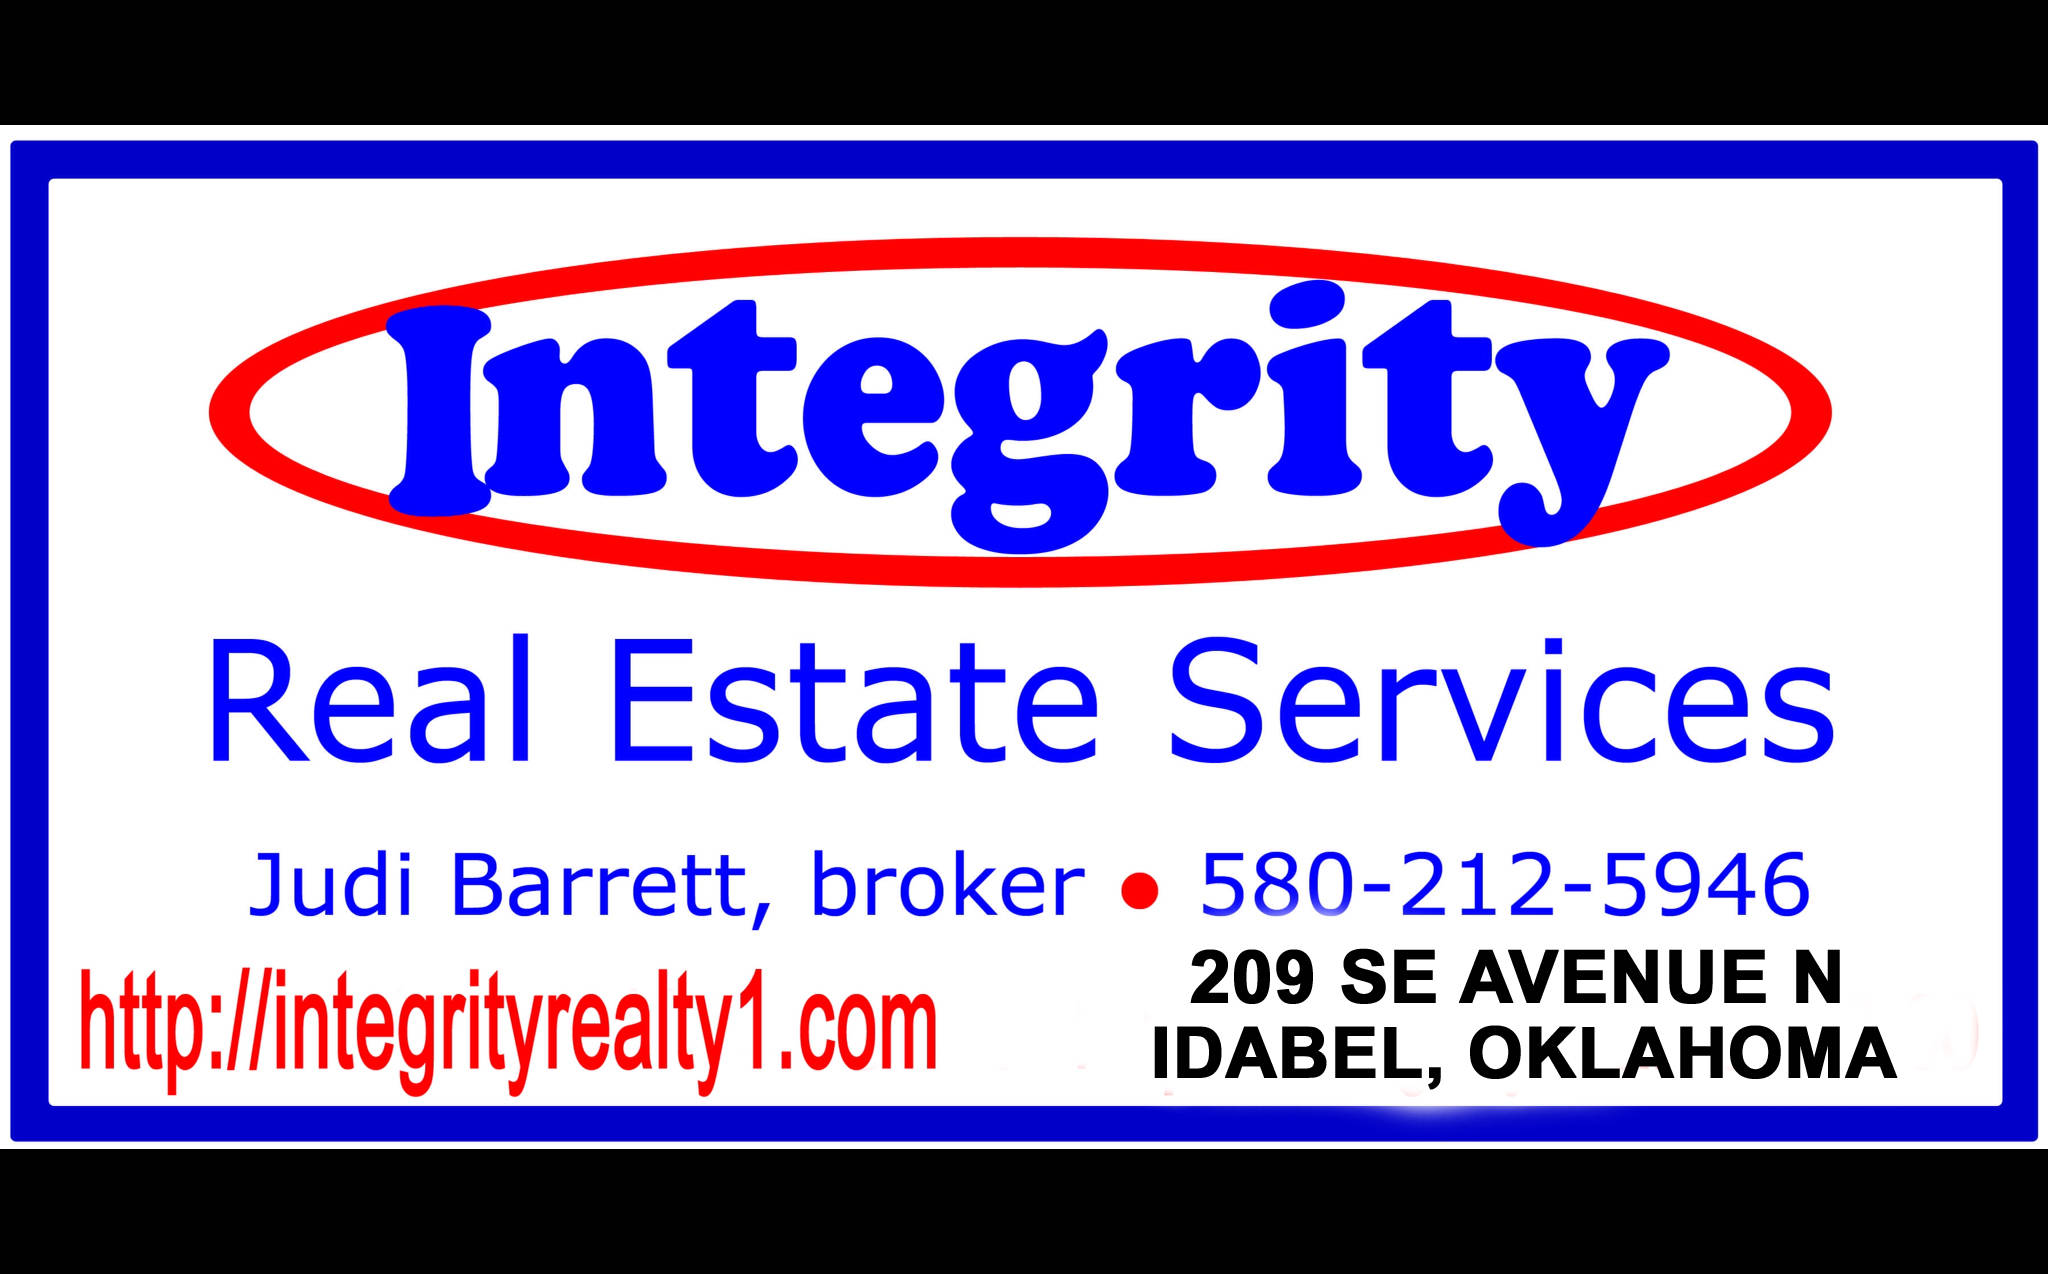 Integrity Real Estate Services Llc Idabel Oklahoma